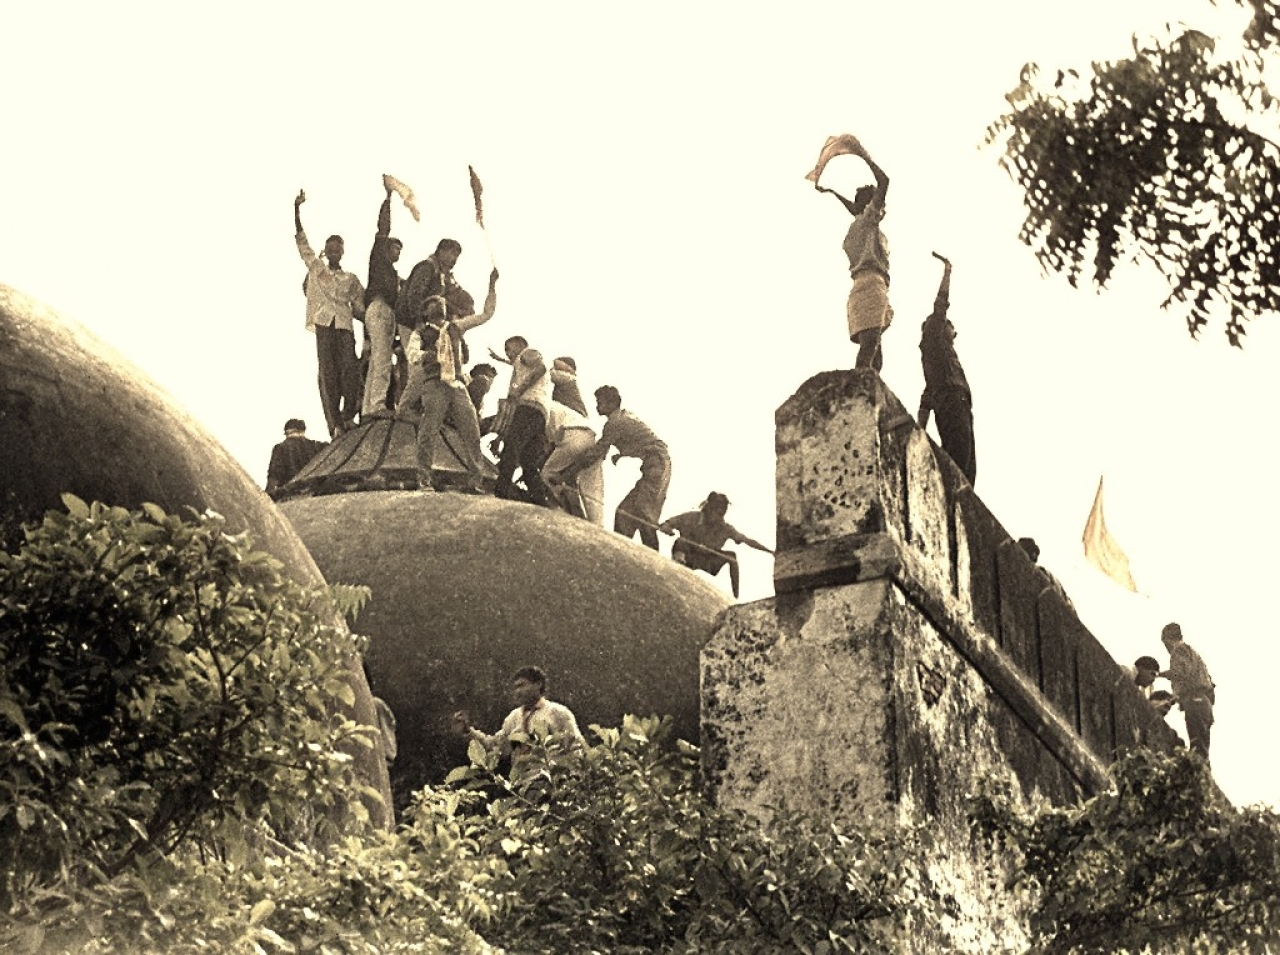 Hindu youth atop the disputed structure in Ayodhya